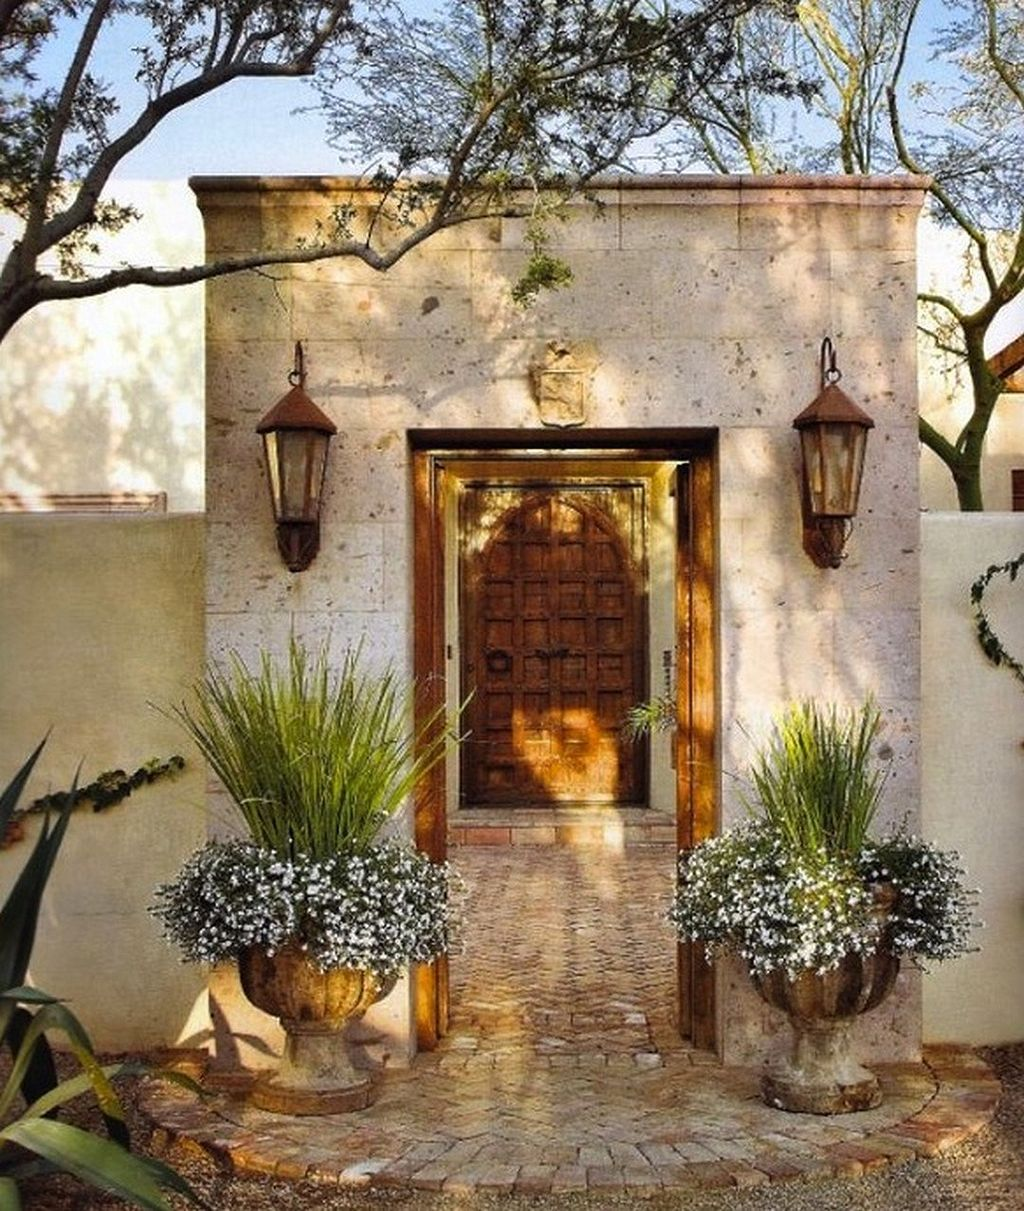 Decorating The Entrance To The House 40 Nice Ideas: 20+ Amazing Modern Adobe House Exterior Design Ideas